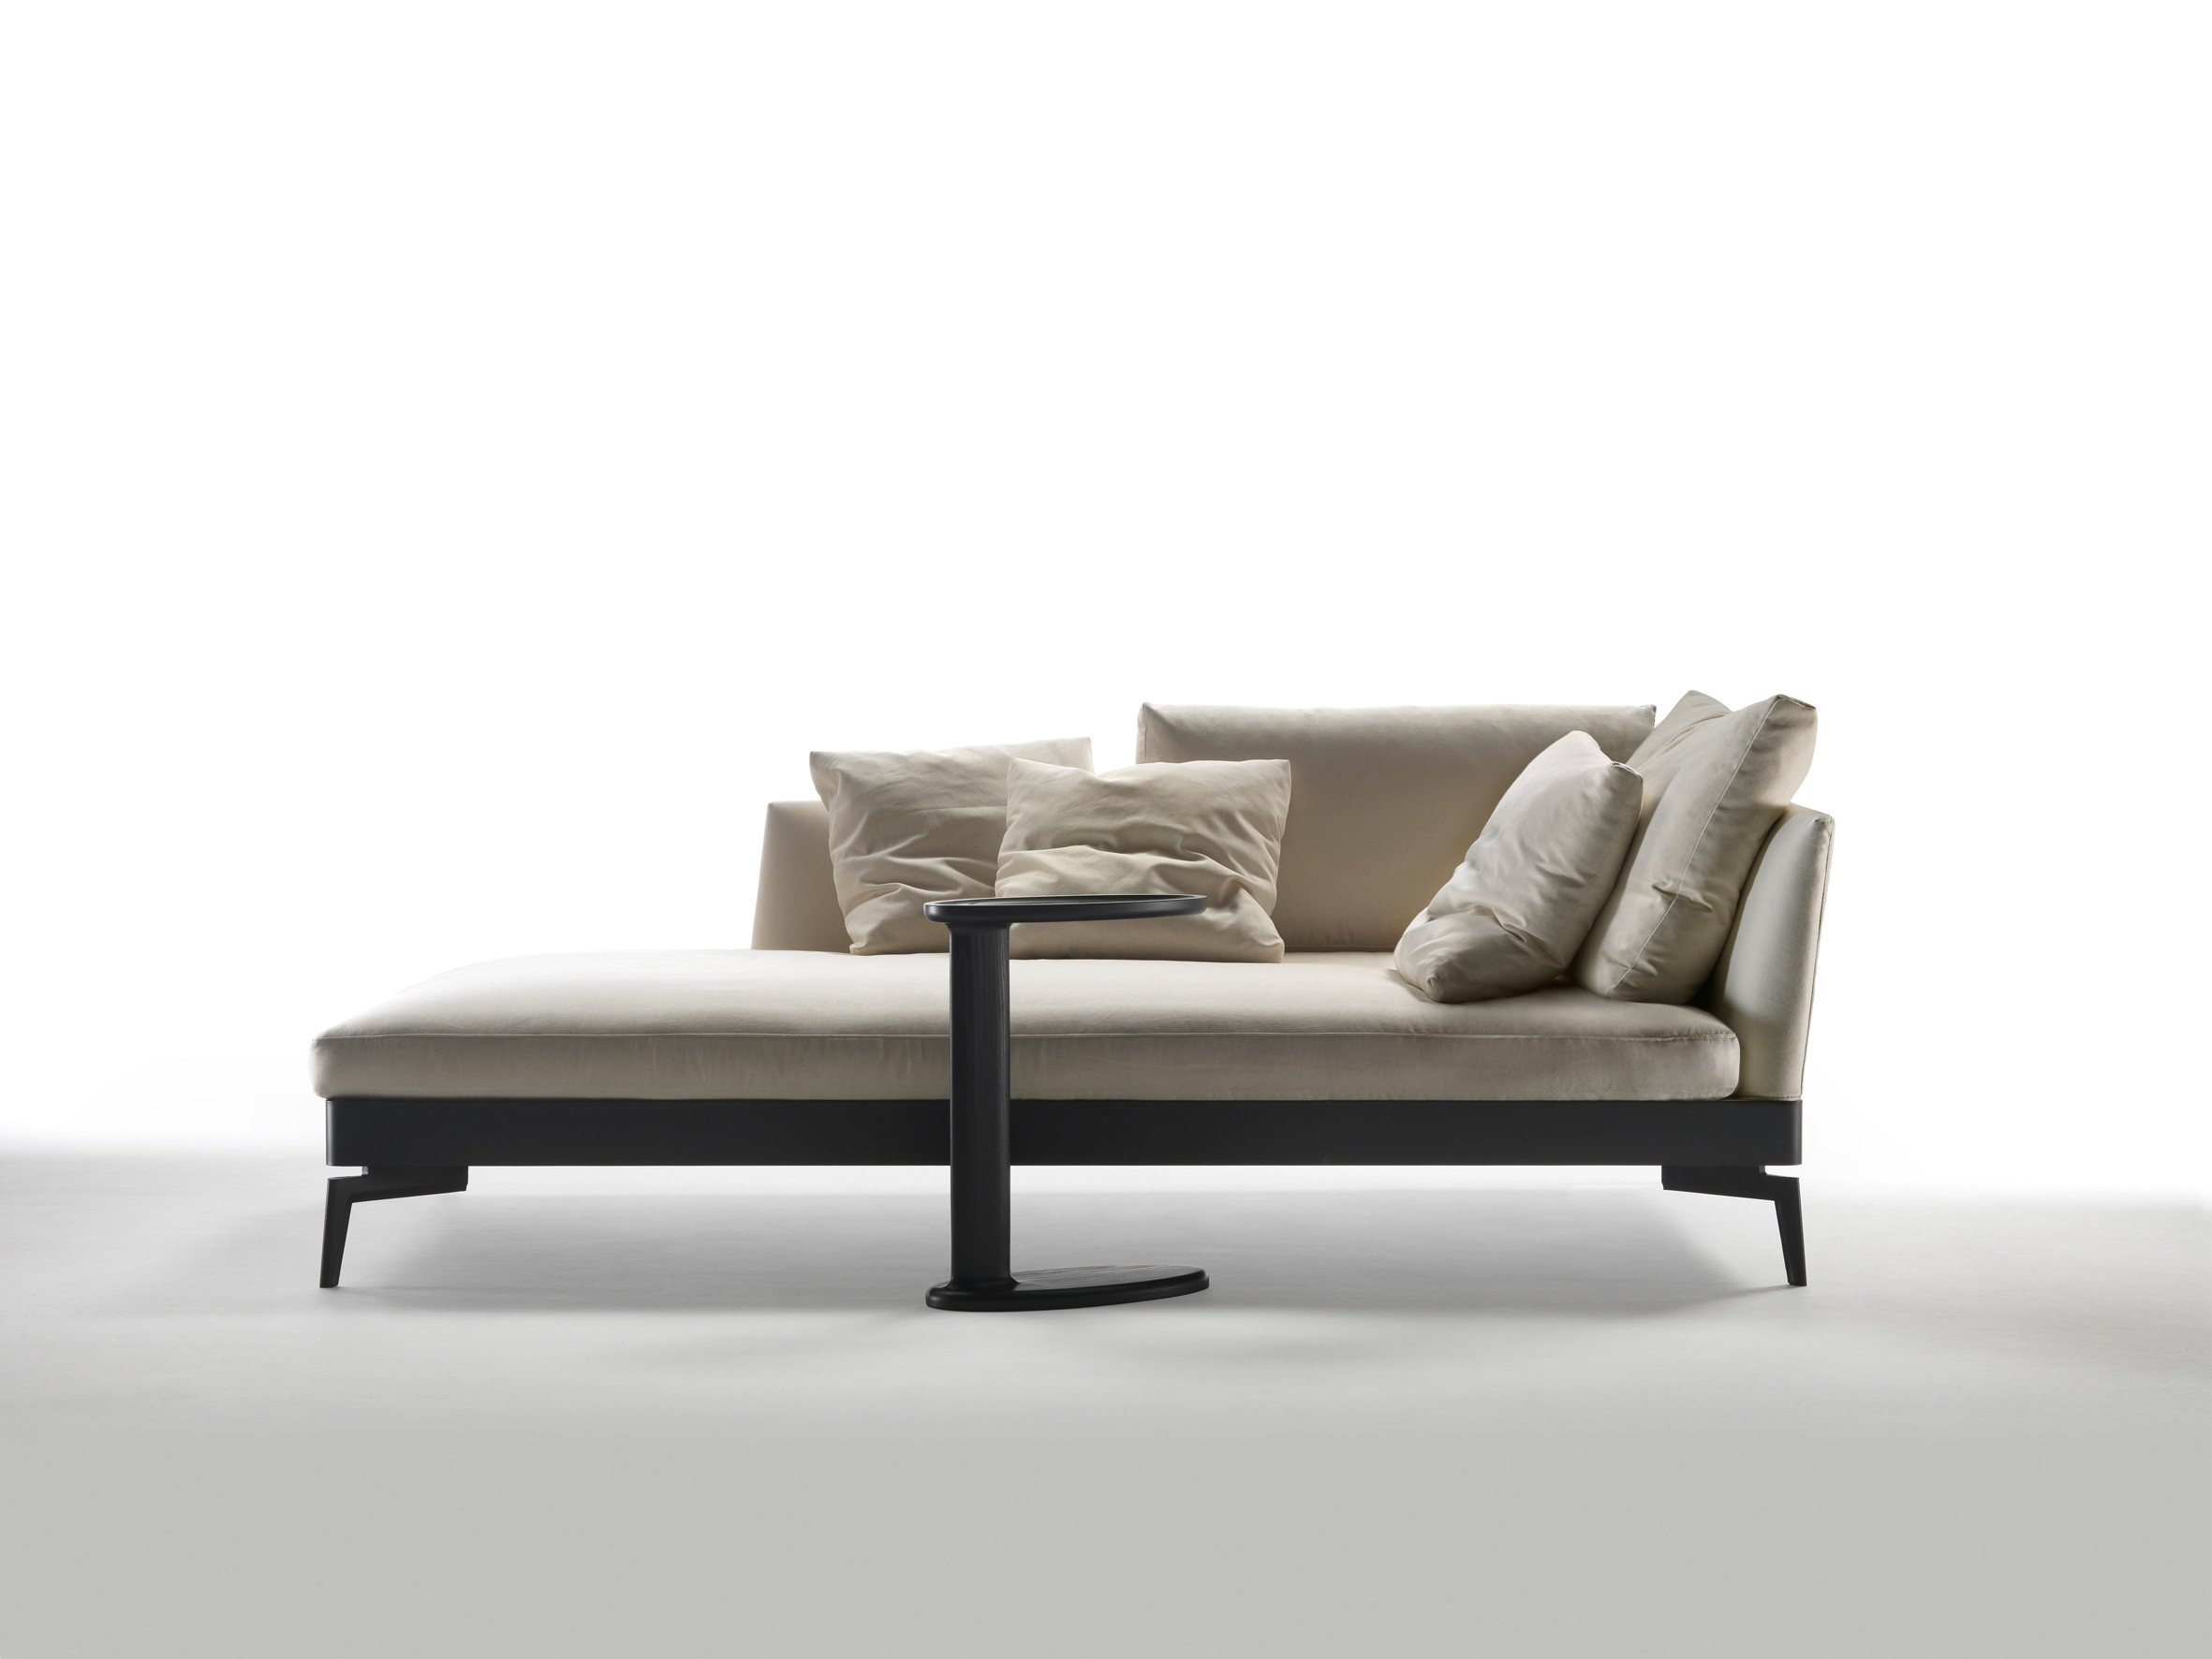 Feelgood sofabeds and chaises fanuli furniture for Chaise daybed sofa